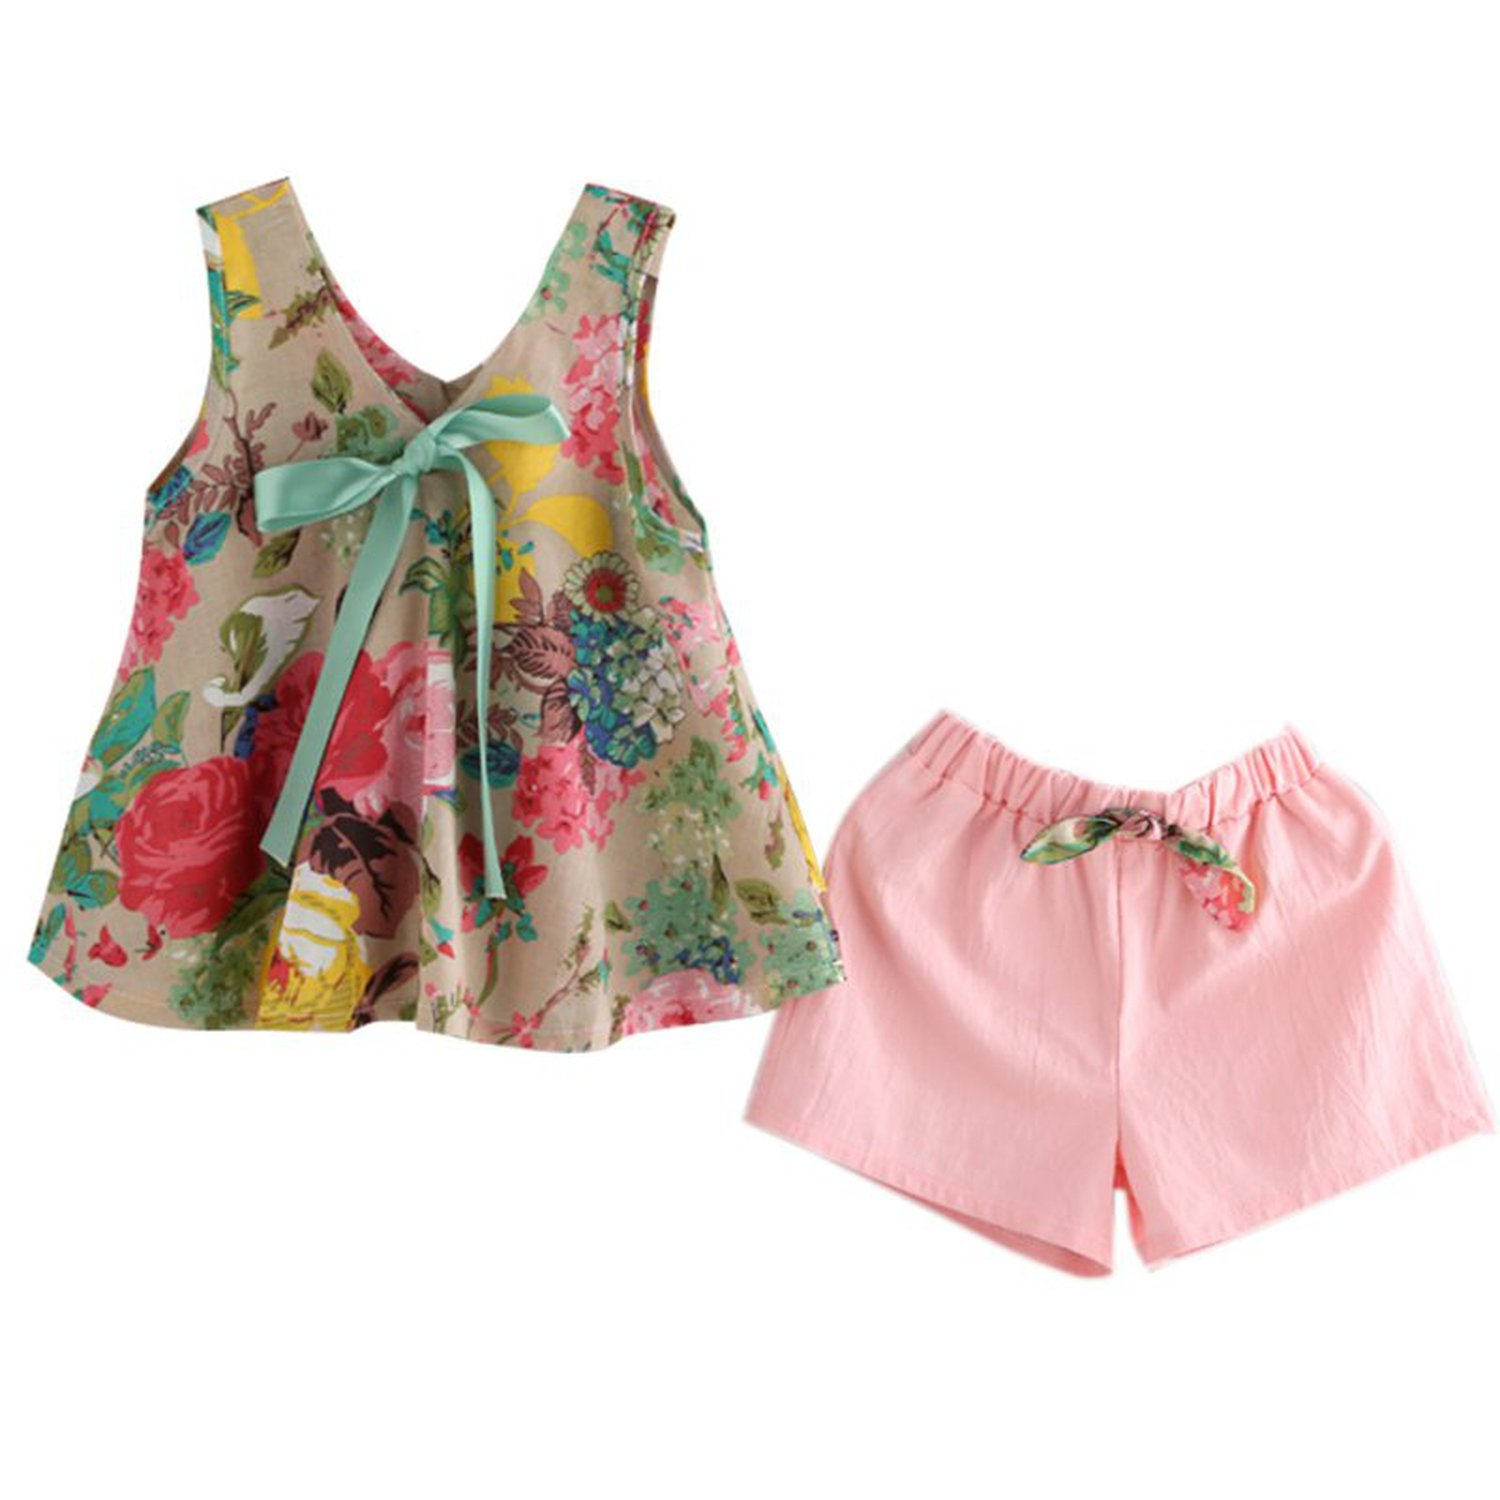 Zcaosma Girls Floral Printed Sleeveless Baby Vest Tops +Shorts Sets,6T